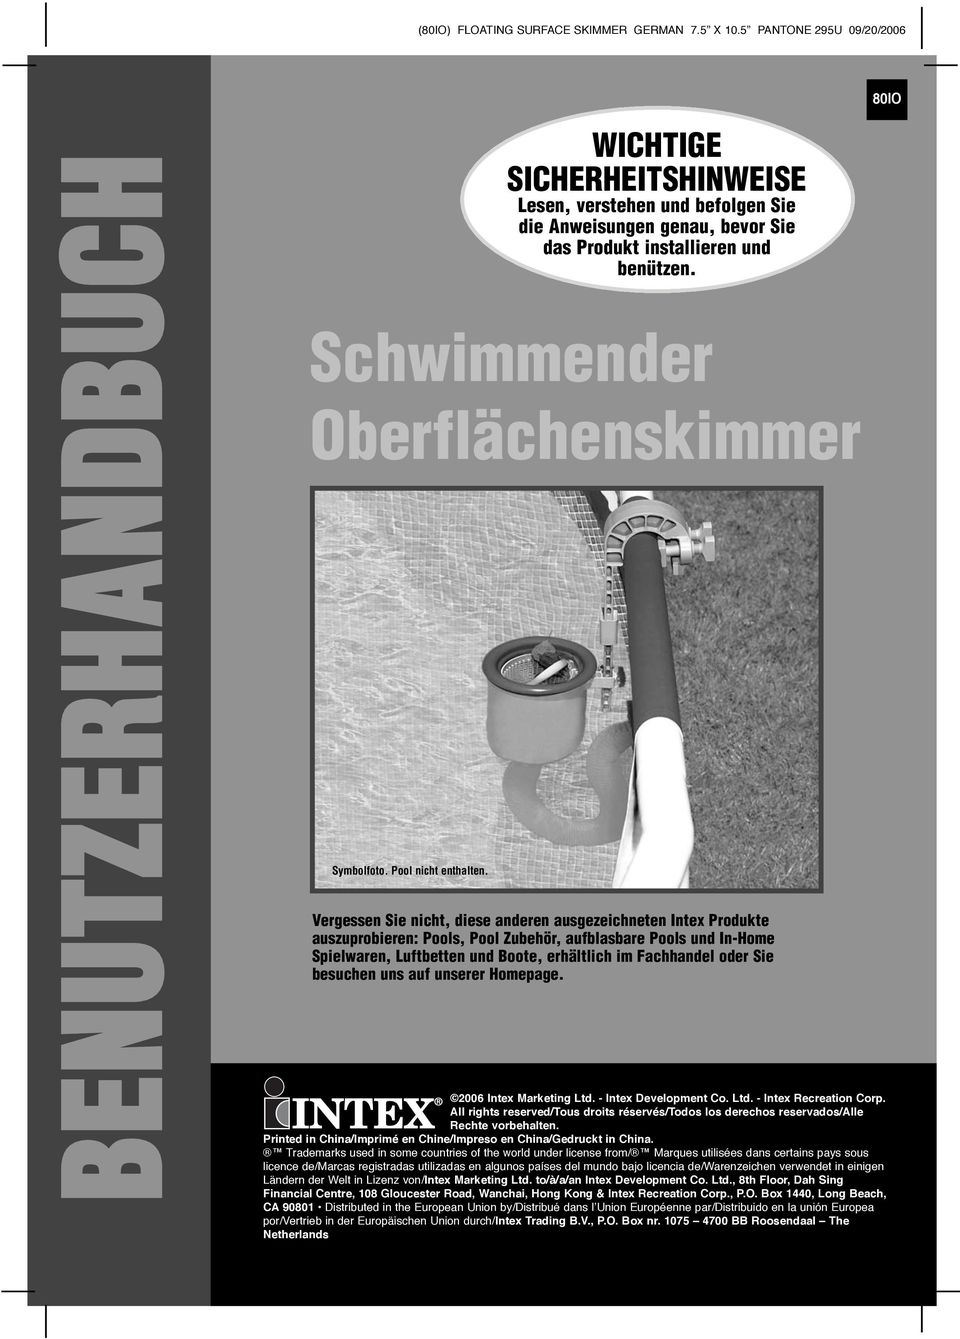 schwimmender oberfl chenskimmer pdf. Black Bedroom Furniture Sets. Home Design Ideas